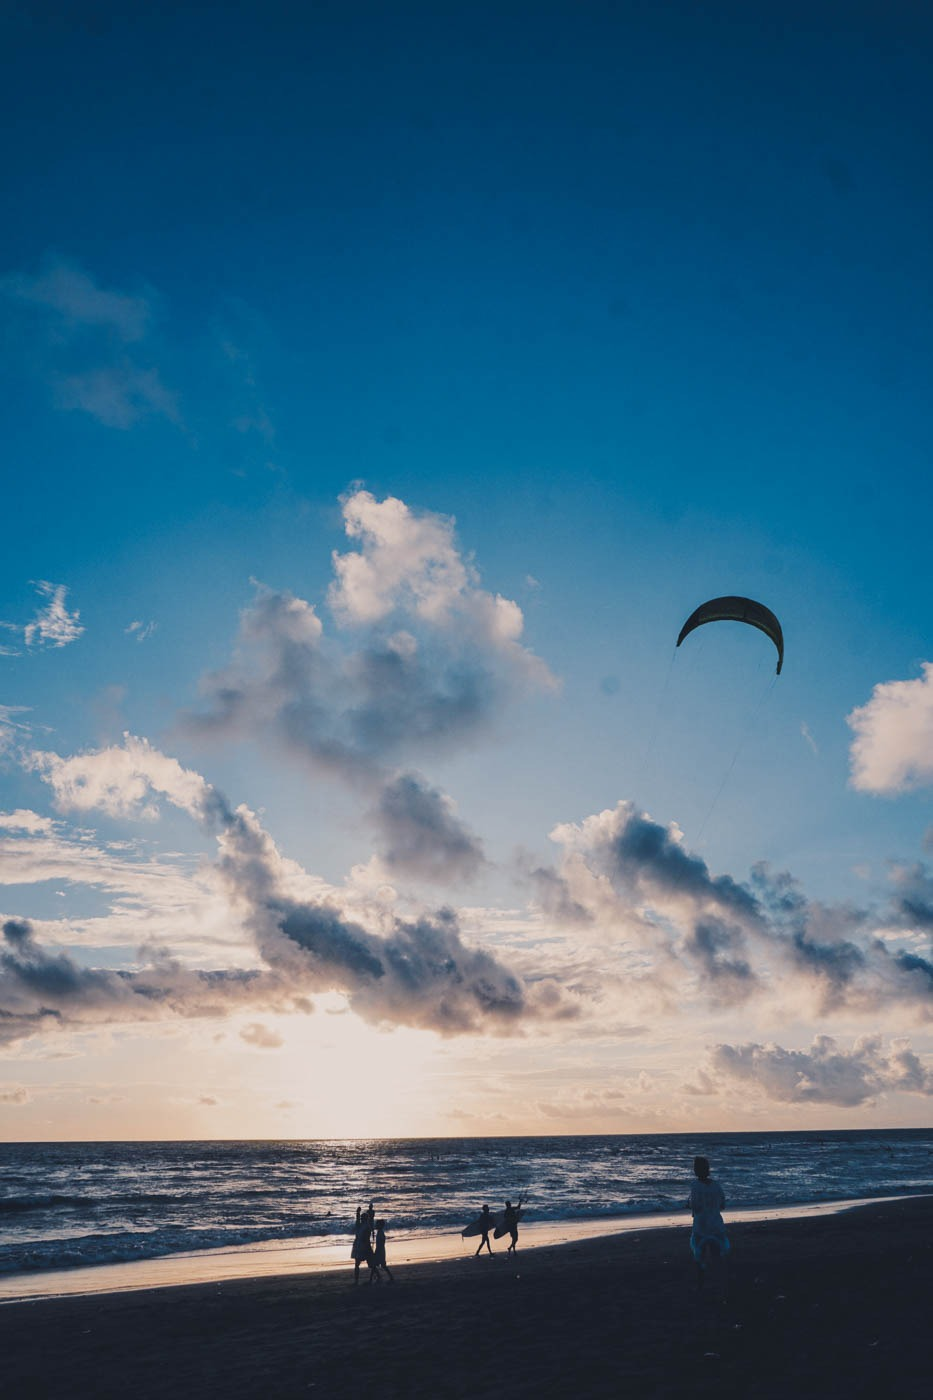 Kitesurfers on the beach in Canggu